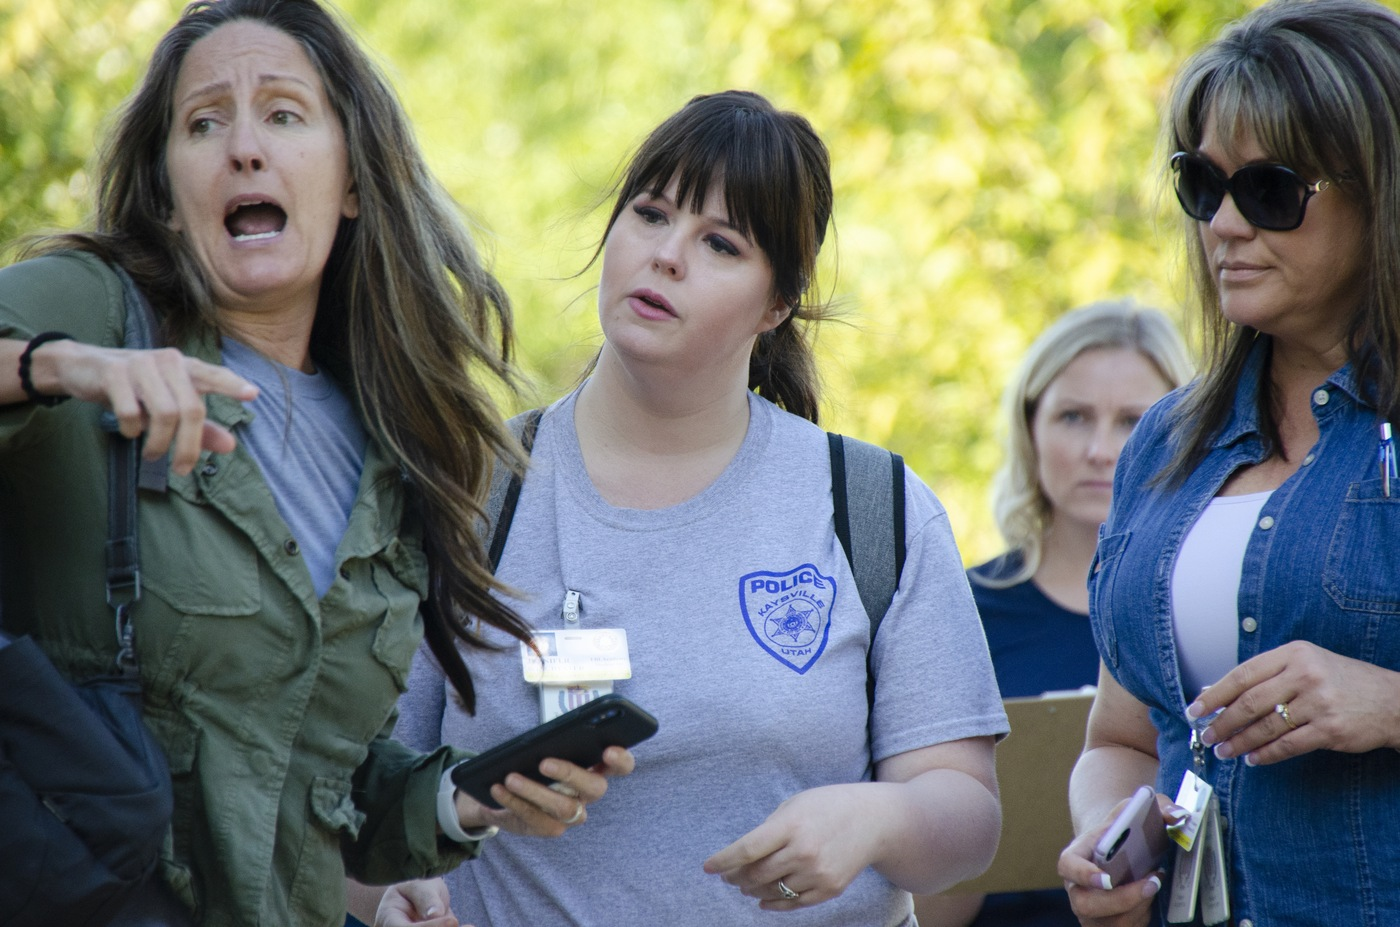 Jennifer Winchester (second from left), a victim advocate in the Kaysville Police Department in Utah, and Kim Messina, victim services manager for the Brighton Police Department in Colorado, meet a distraught family member (role-player) near a crime scene during a September 25, 2019, mass-casualty exercise at the FBI Training Academy in Quantico, Virginia. The exercise culminated ELEVATE-APB training for victim service providers.